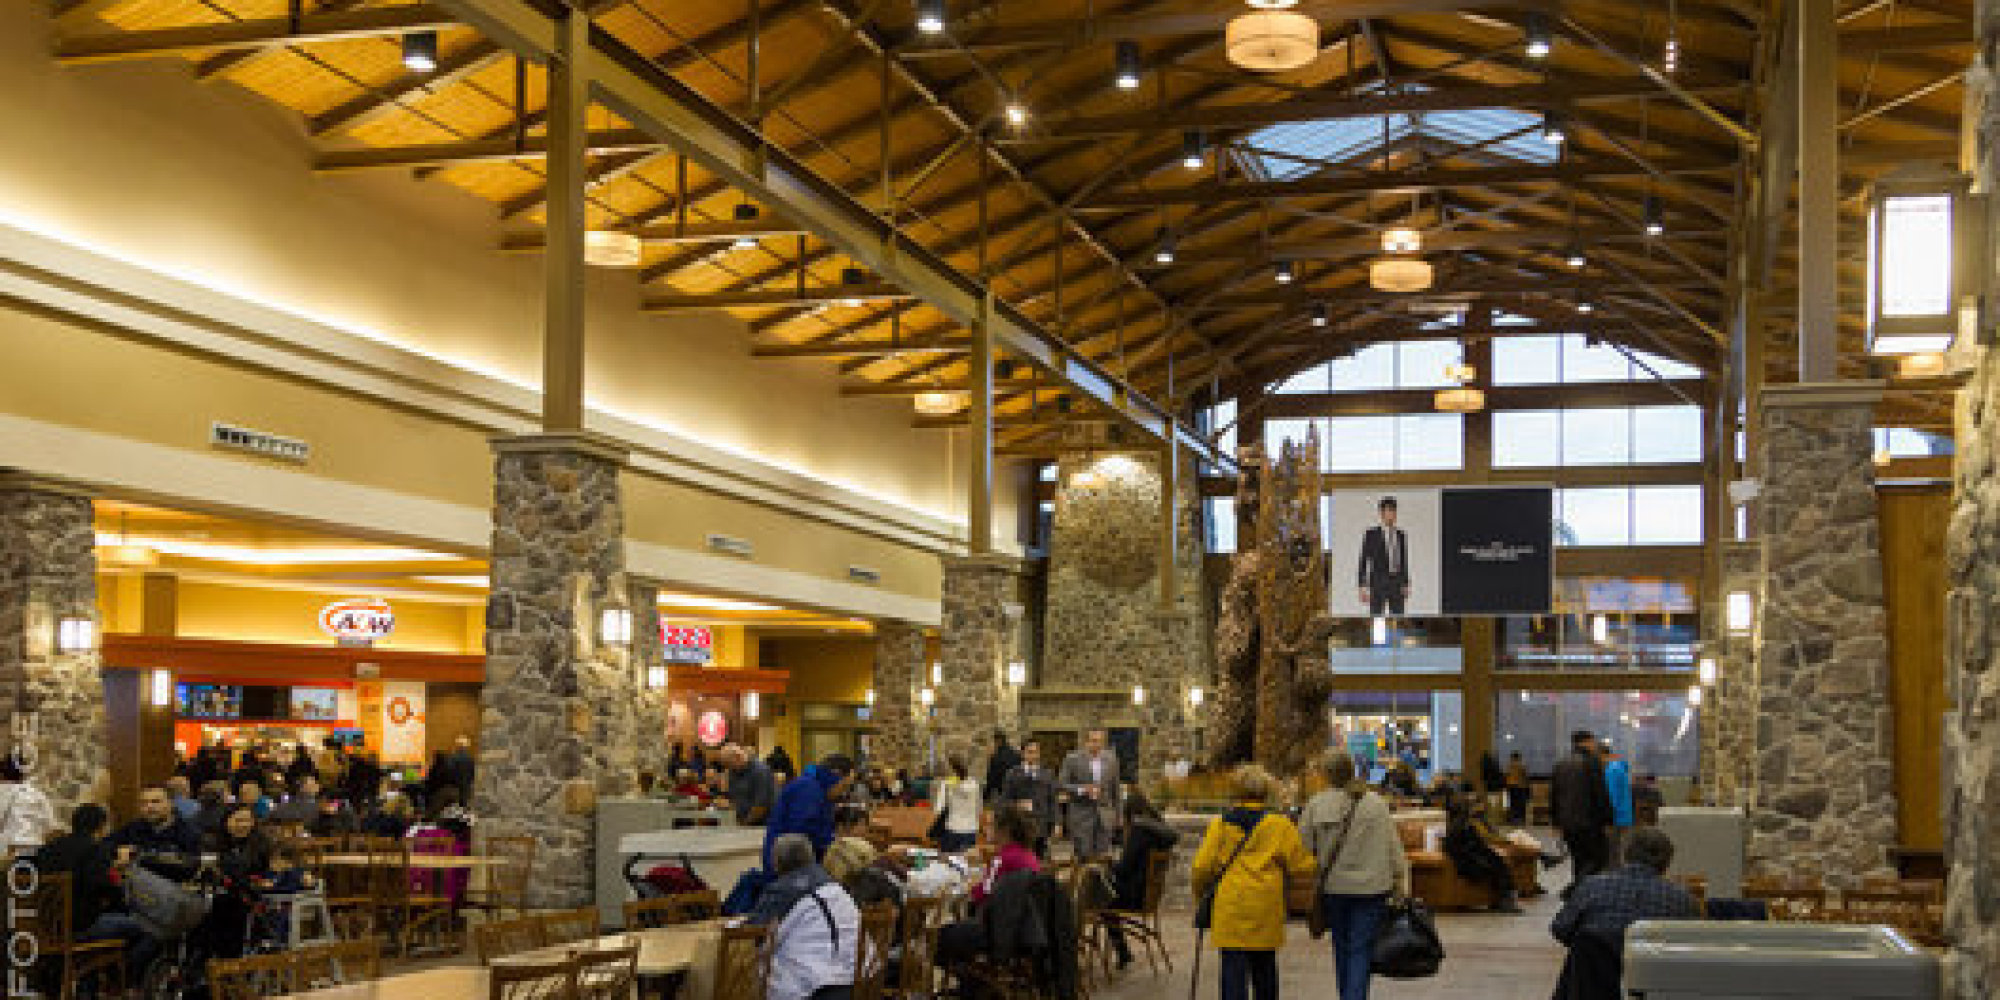 Premium outlets is a great place for discounted shopping on various brands (Nike, Adidas, Michael Kors, Ralph Lauren, etc.). There's also a food court with multiple options and food choices. Best place to spend a /5().